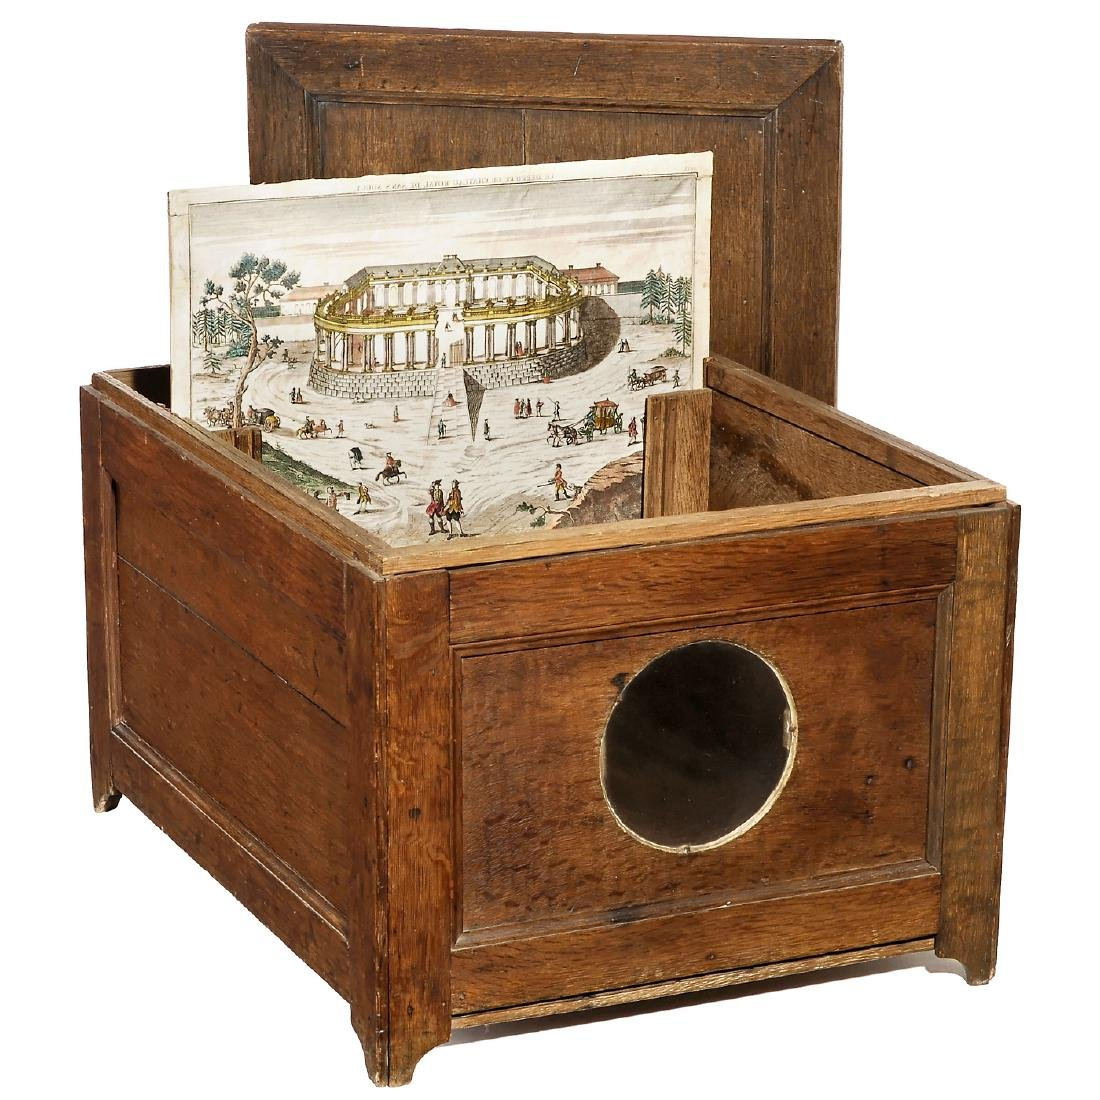 Early Oak Peep Box, c. 1780